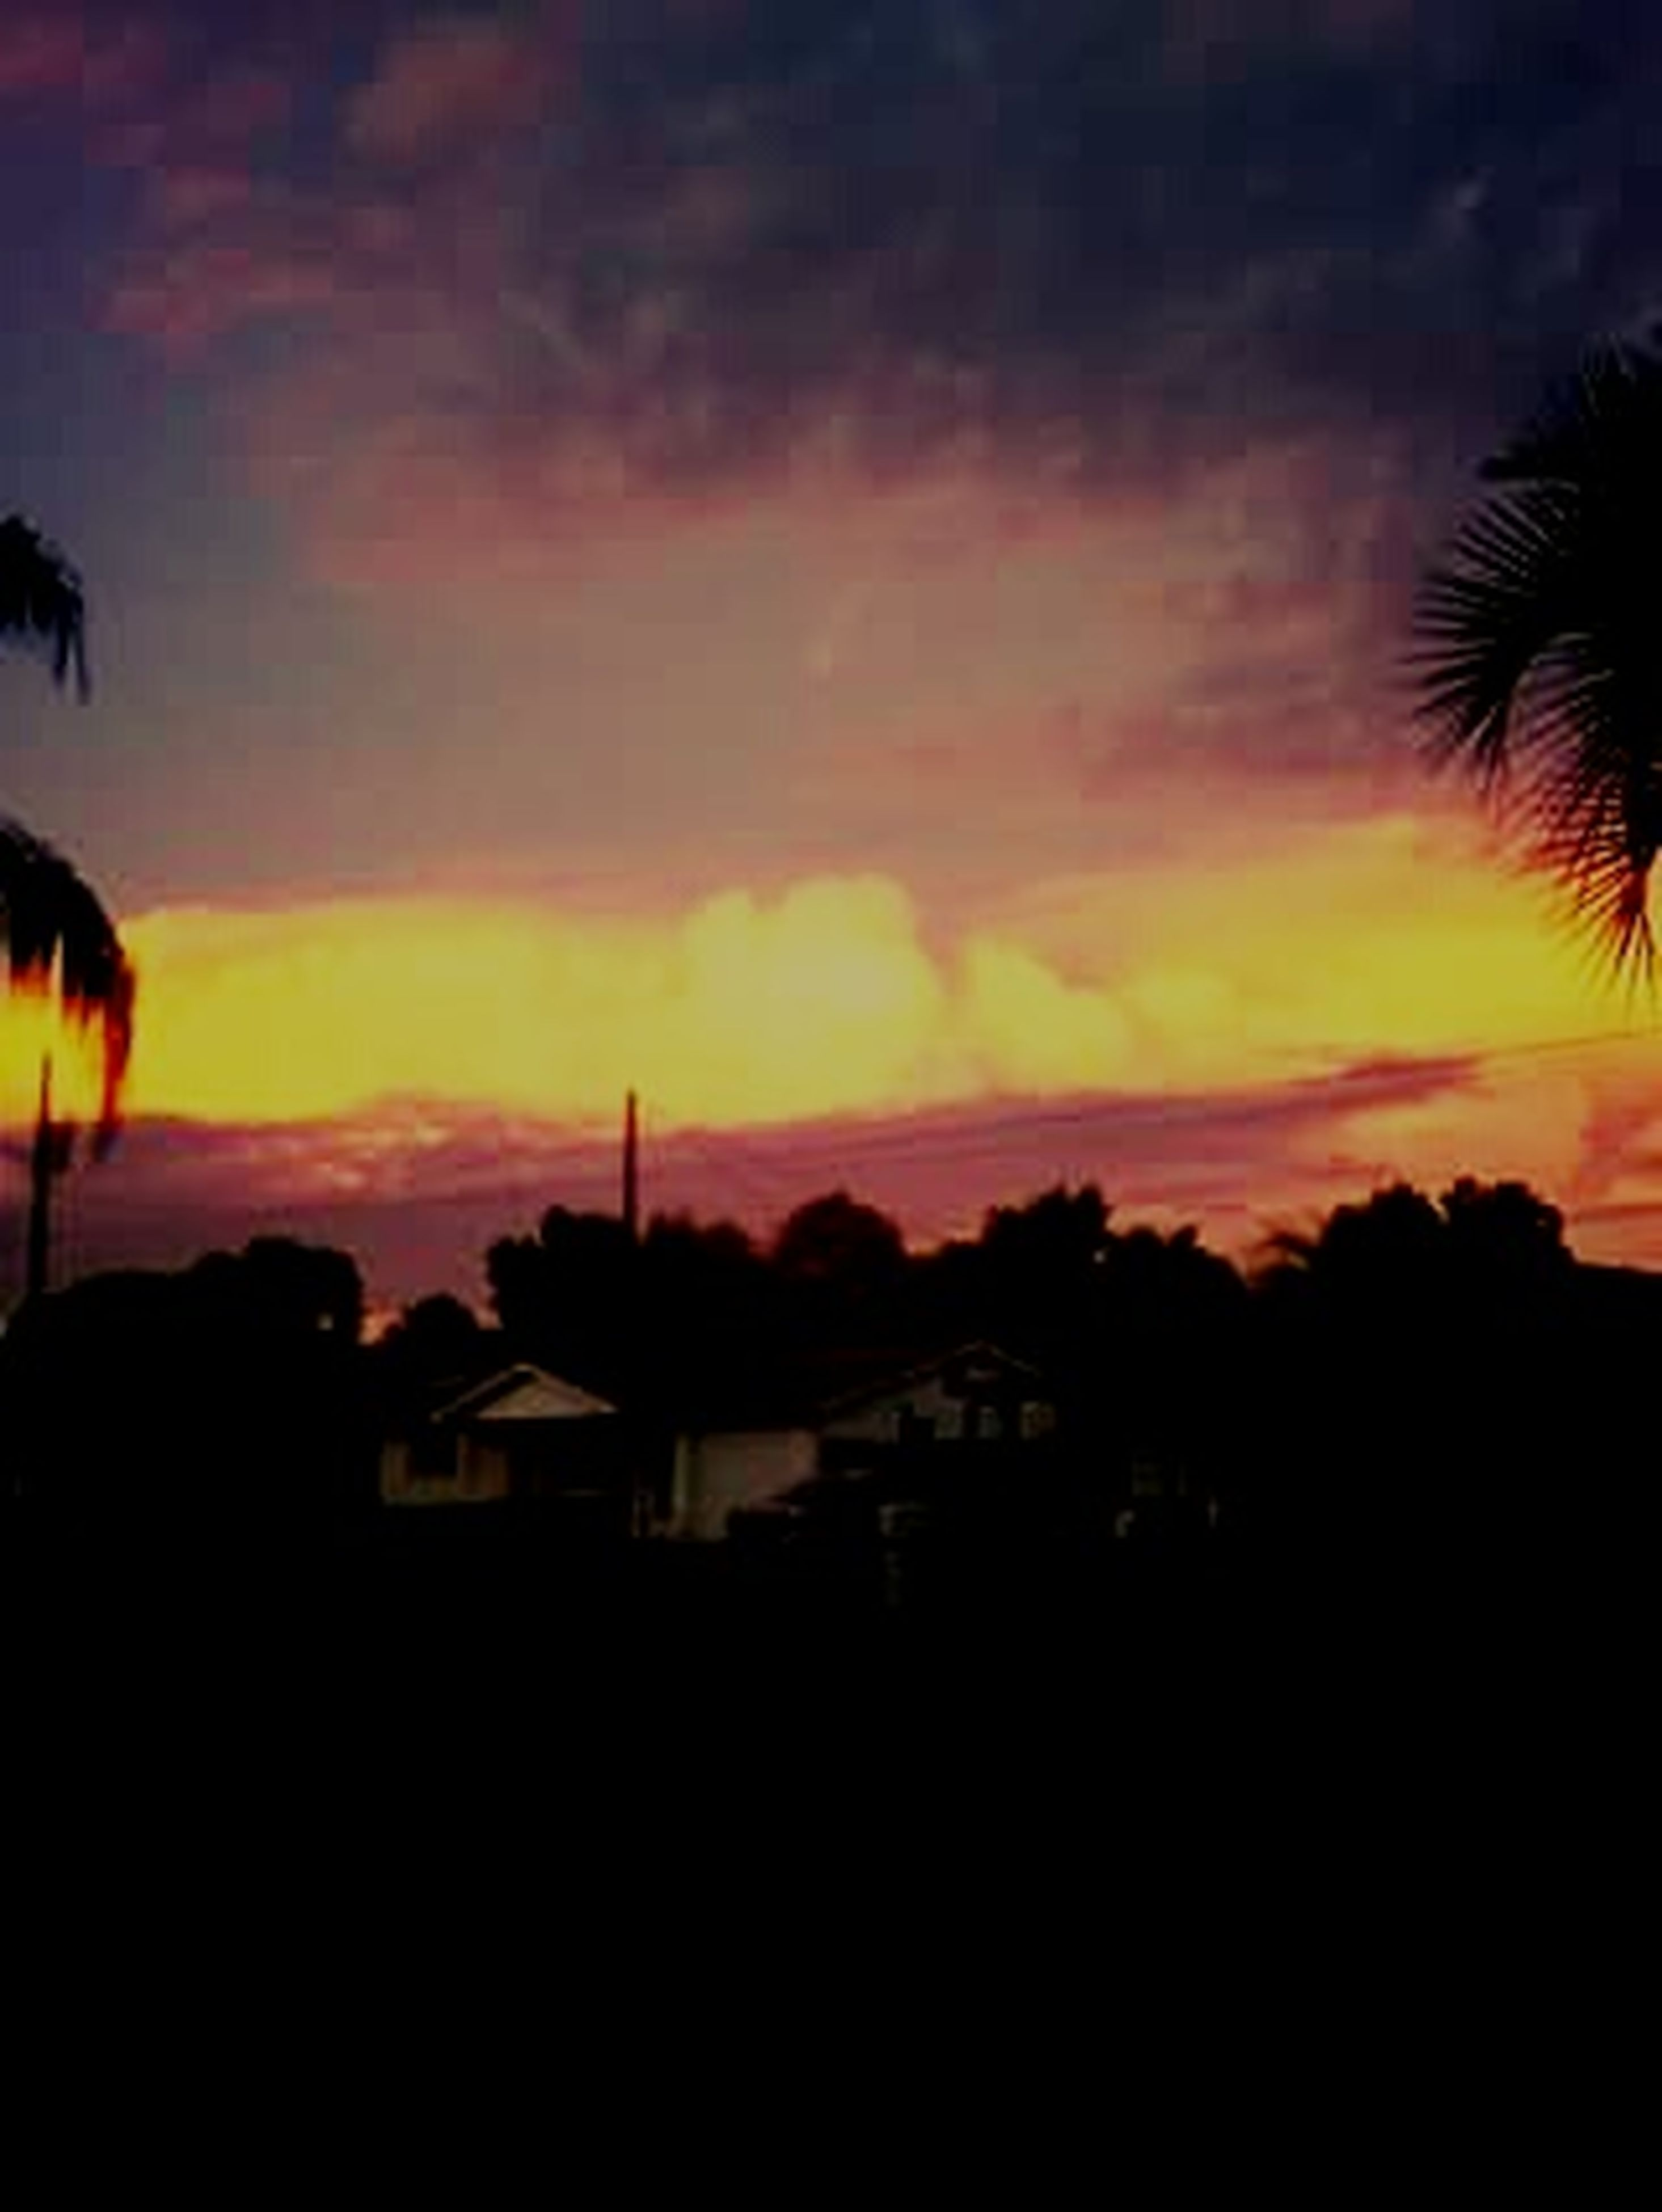 sunset, silhouette, sky, orange color, scenics, beauty in nature, tranquil scene, tree, tranquility, cloud - sky, dark, dramatic sky, nature, landscape, idyllic, dusk, palm tree, moody sky, cloud, outline